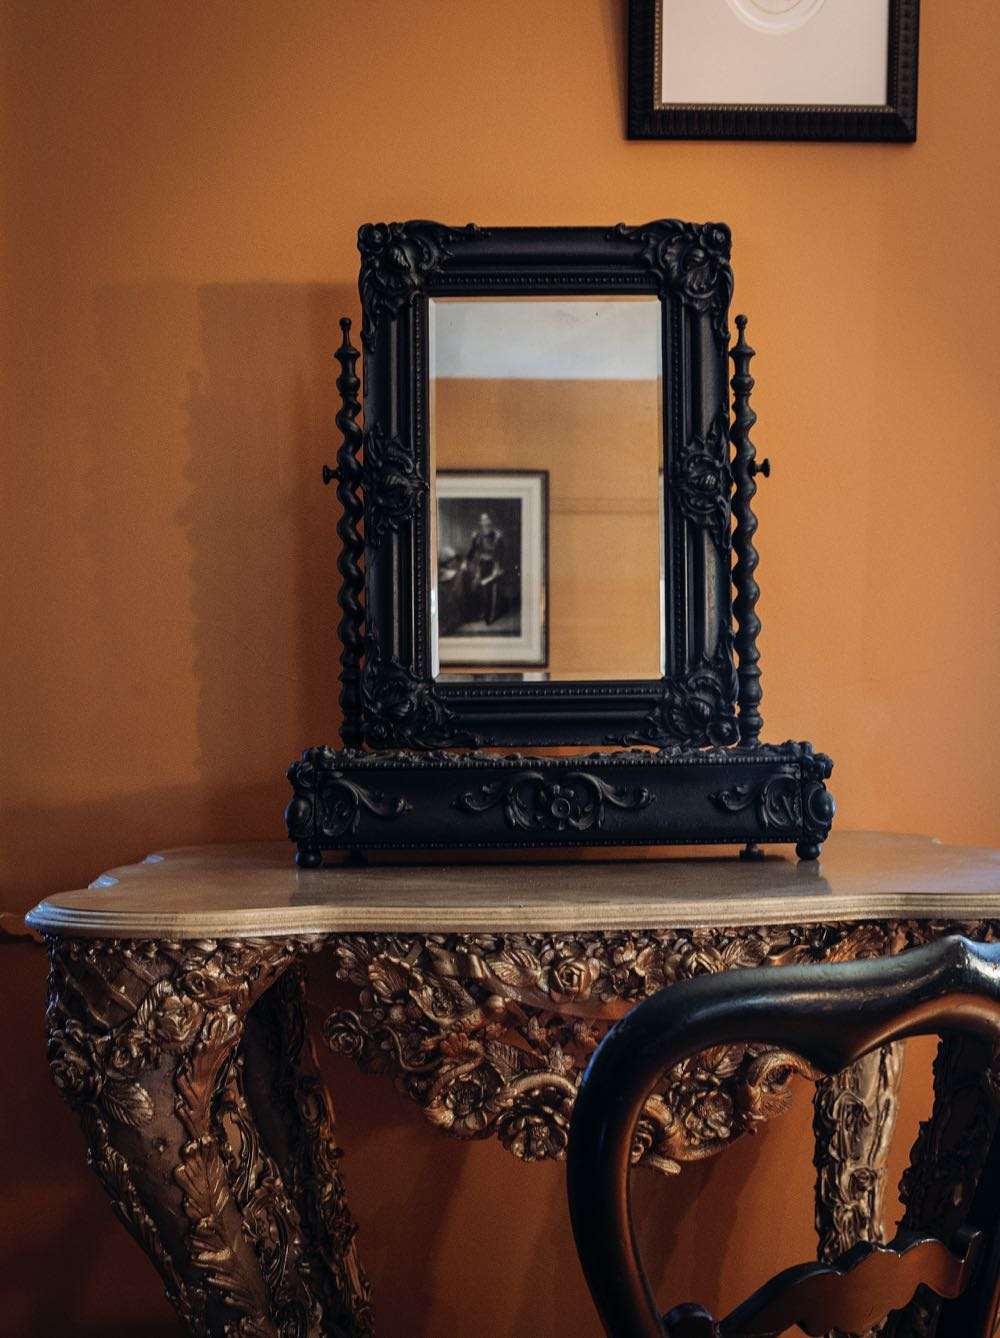 A part of Kate Rohde's Pheasant & Pangolin vitrine, the console table is made from polystyrene and epoxy resin. An early 19th century,elaborately carved dressing table mirror sits upon it.